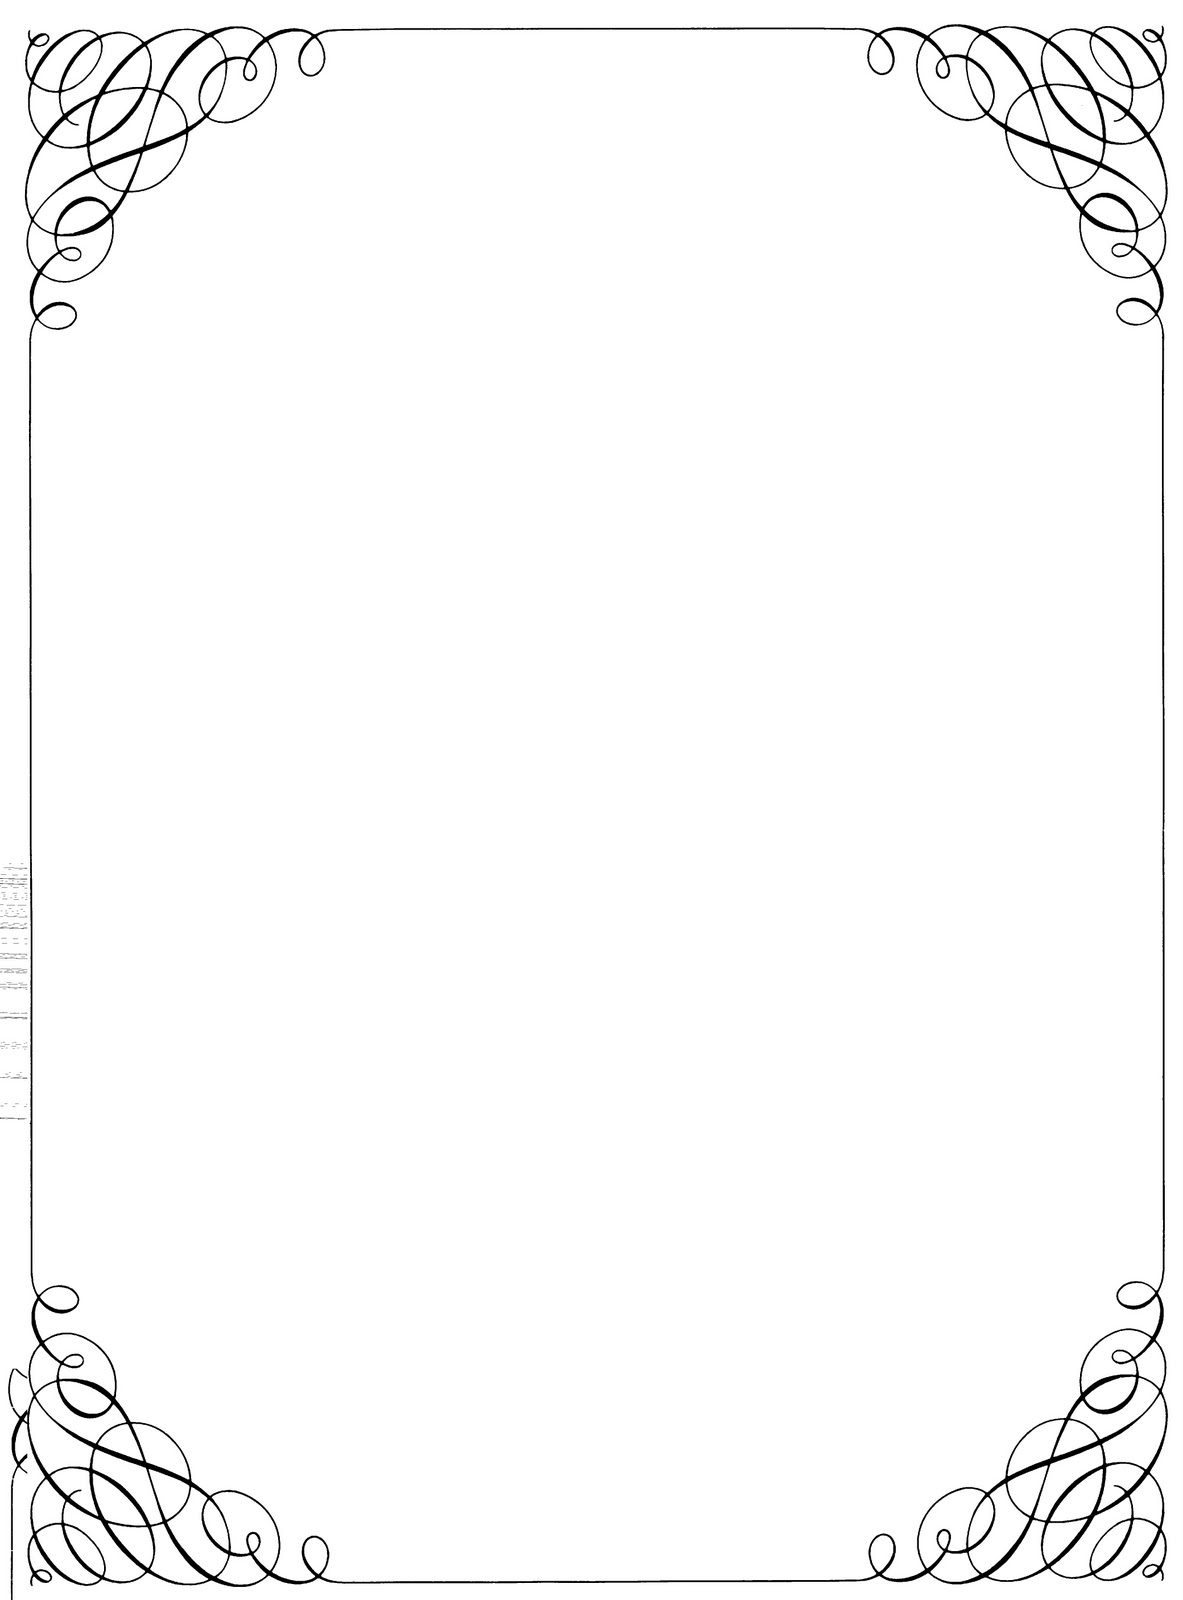 Clip Art Borders And Frames